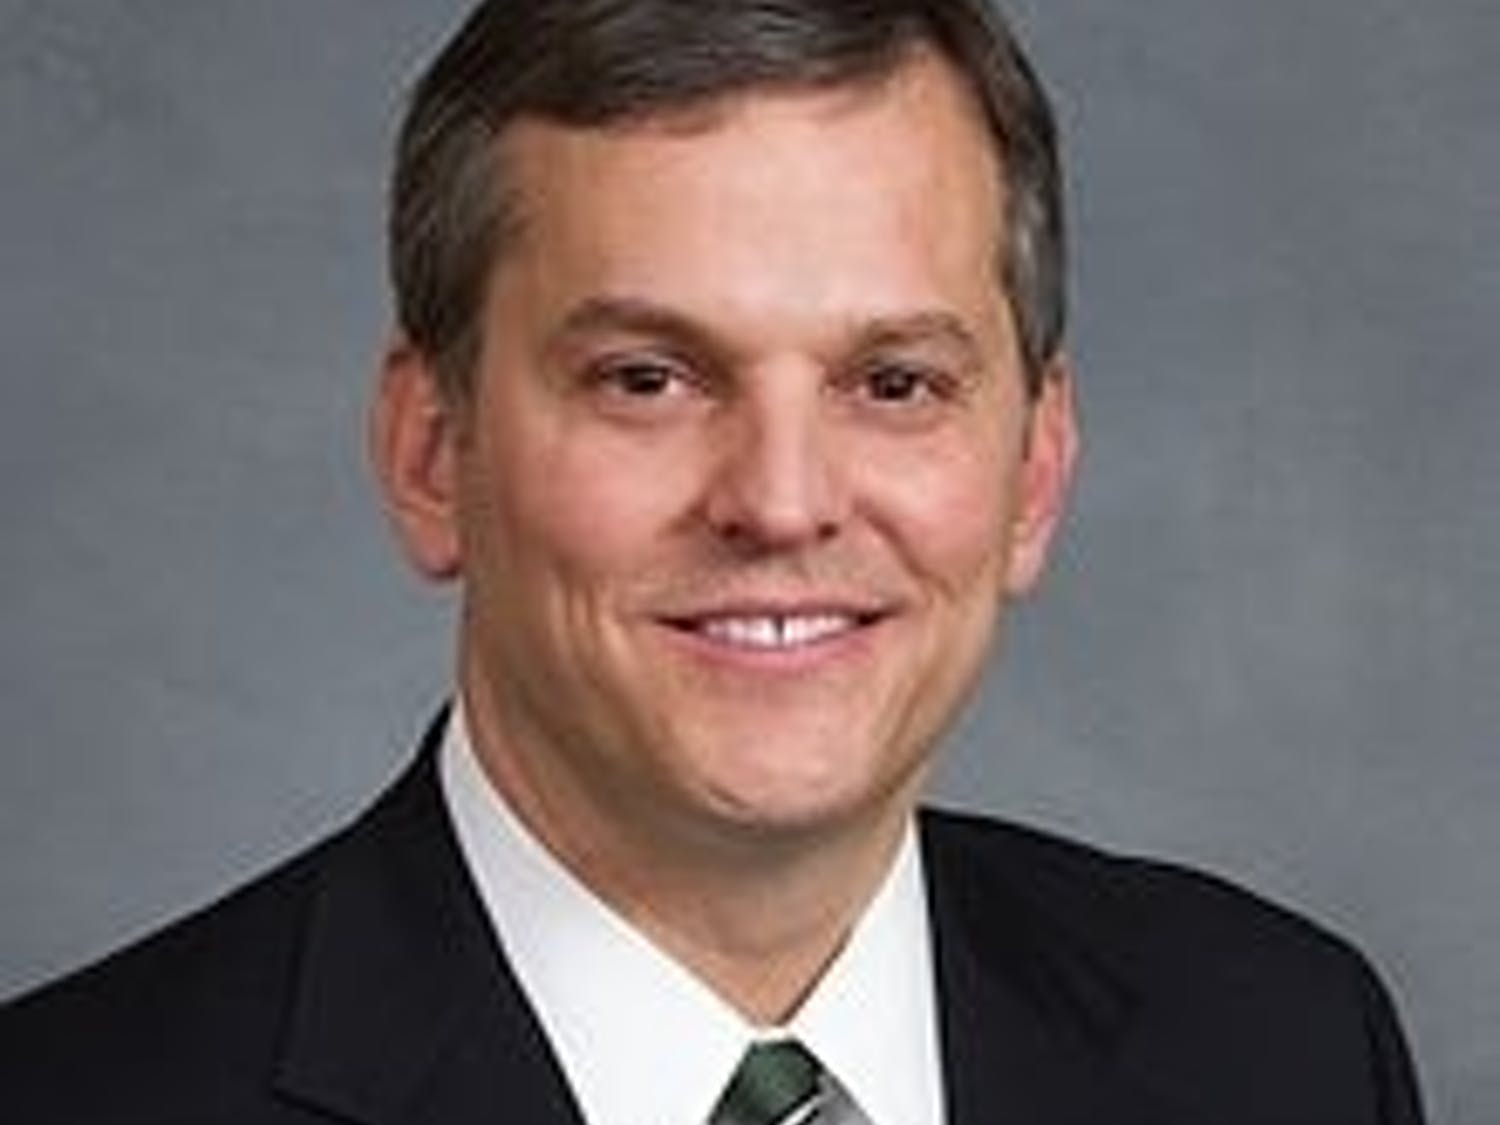 N.C. Attorney General Josh Stein has joined 15 other attorney generals in suing President Trump over his repeal of DACA.